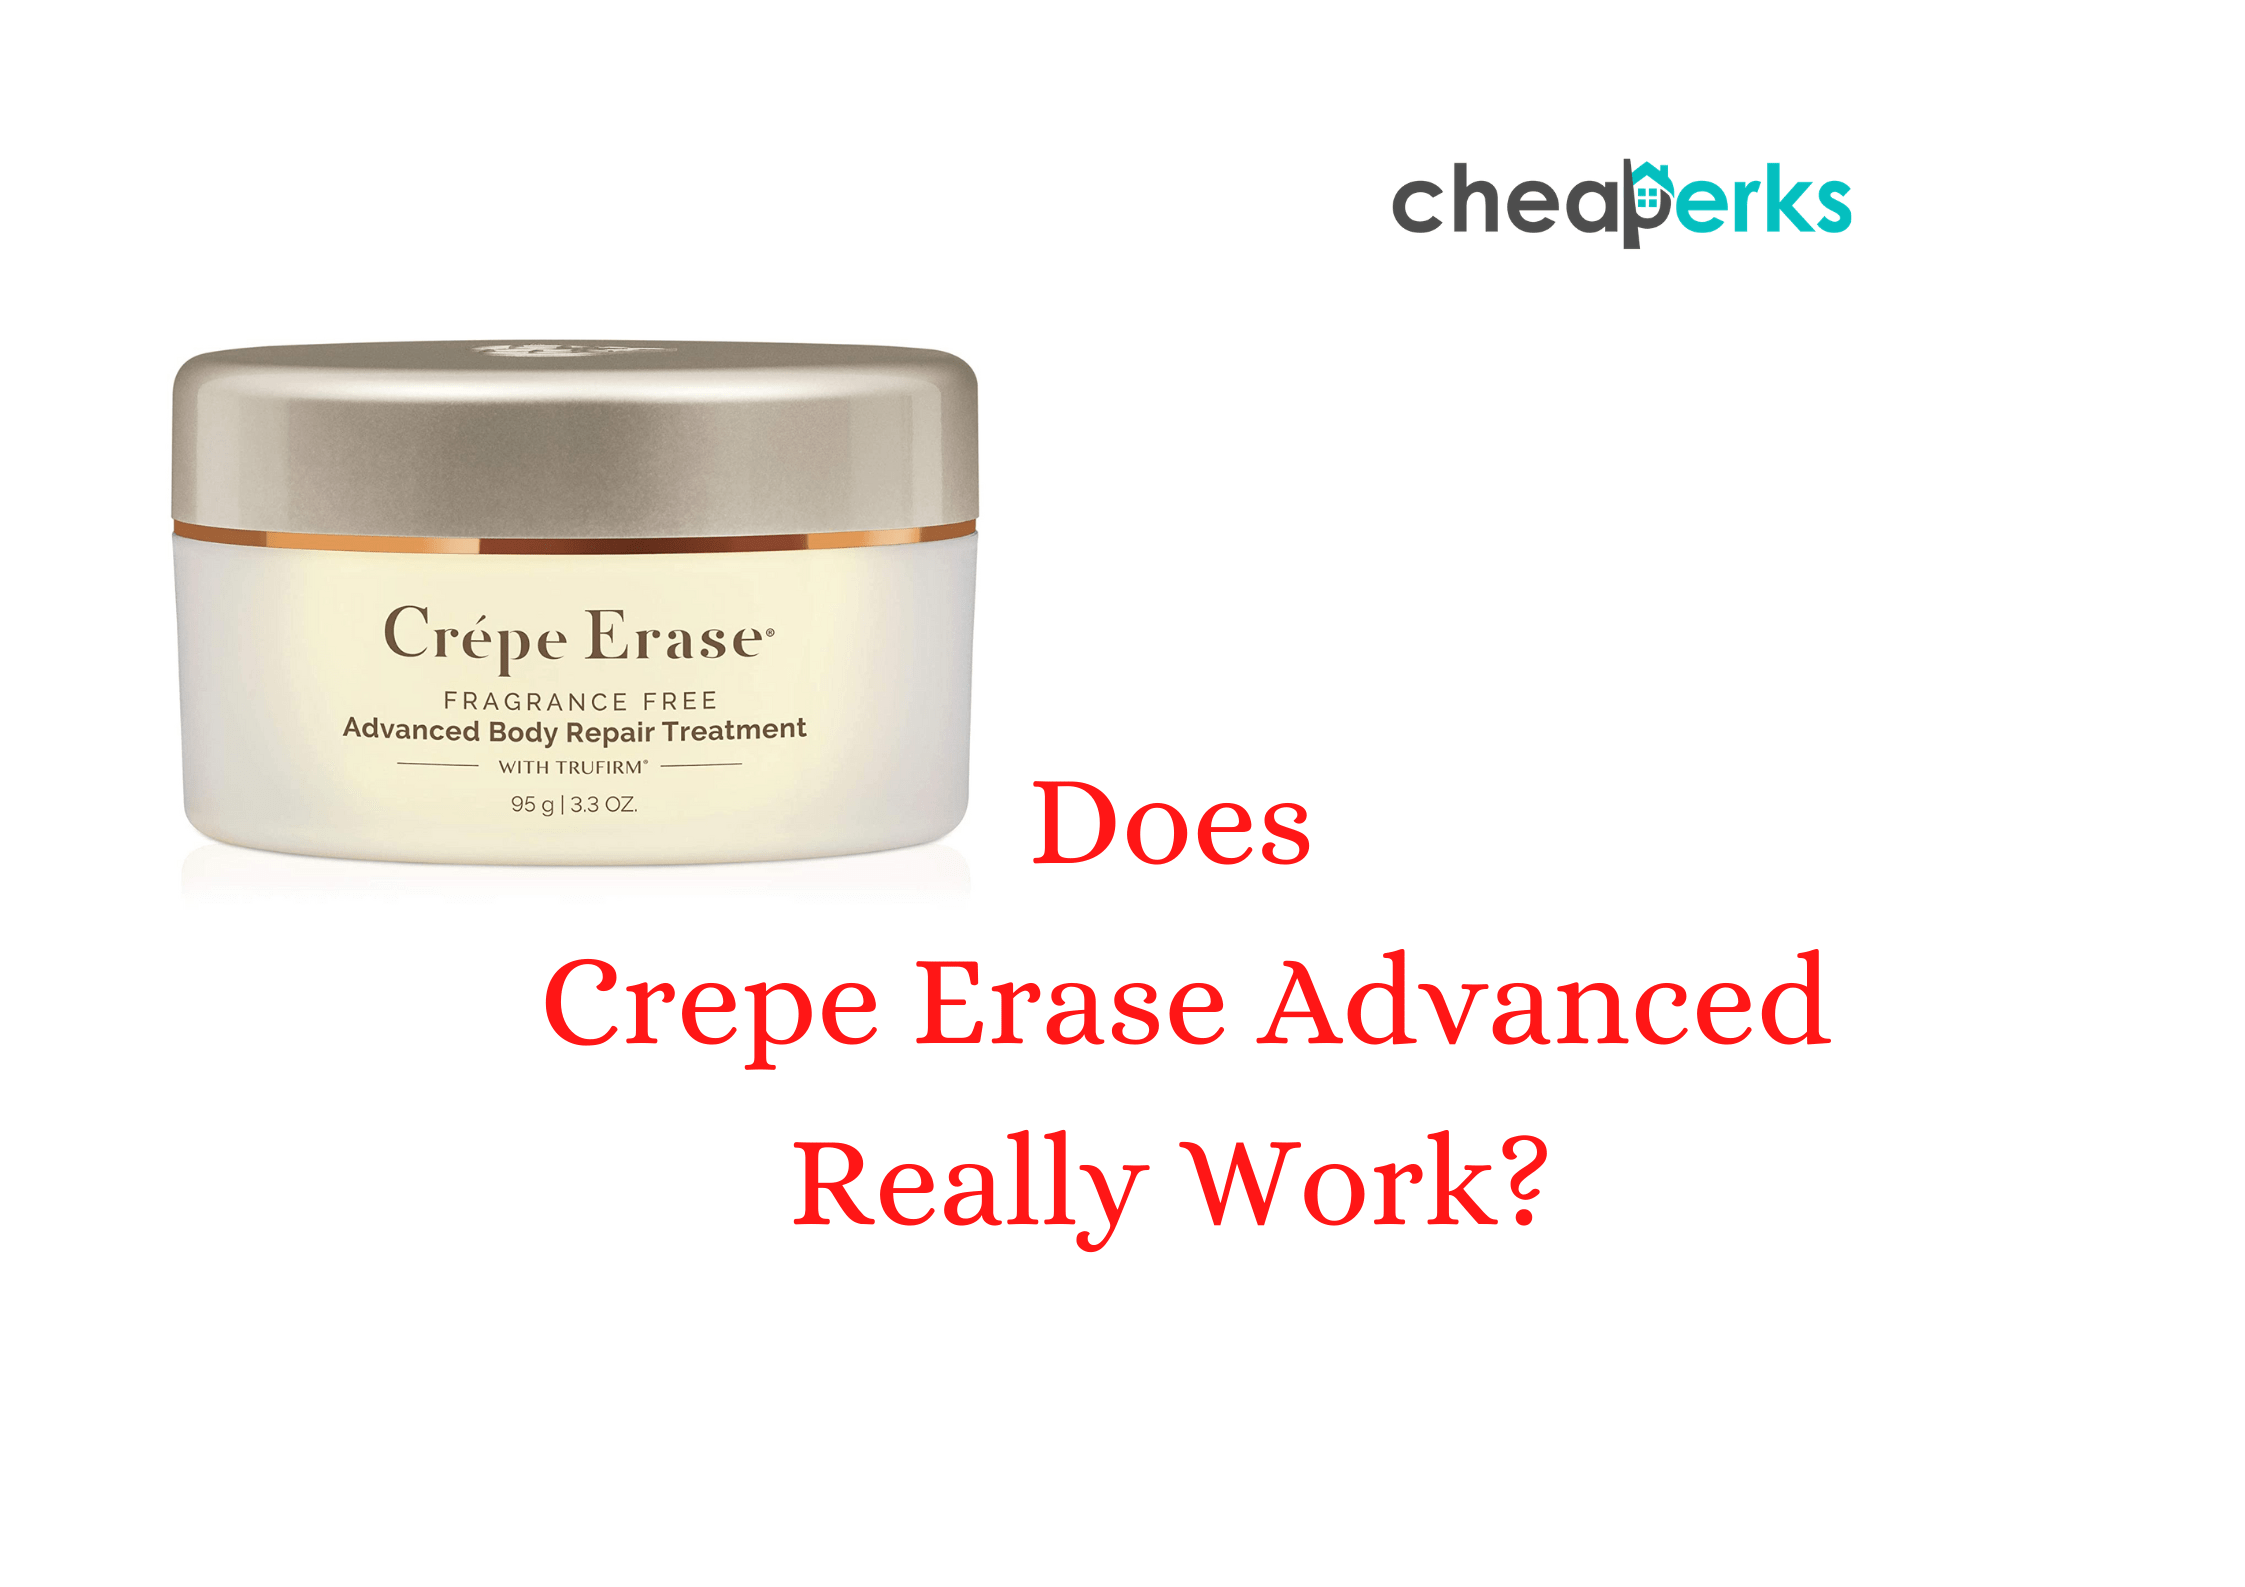 Does Crepe Erase Advanced Really Work_